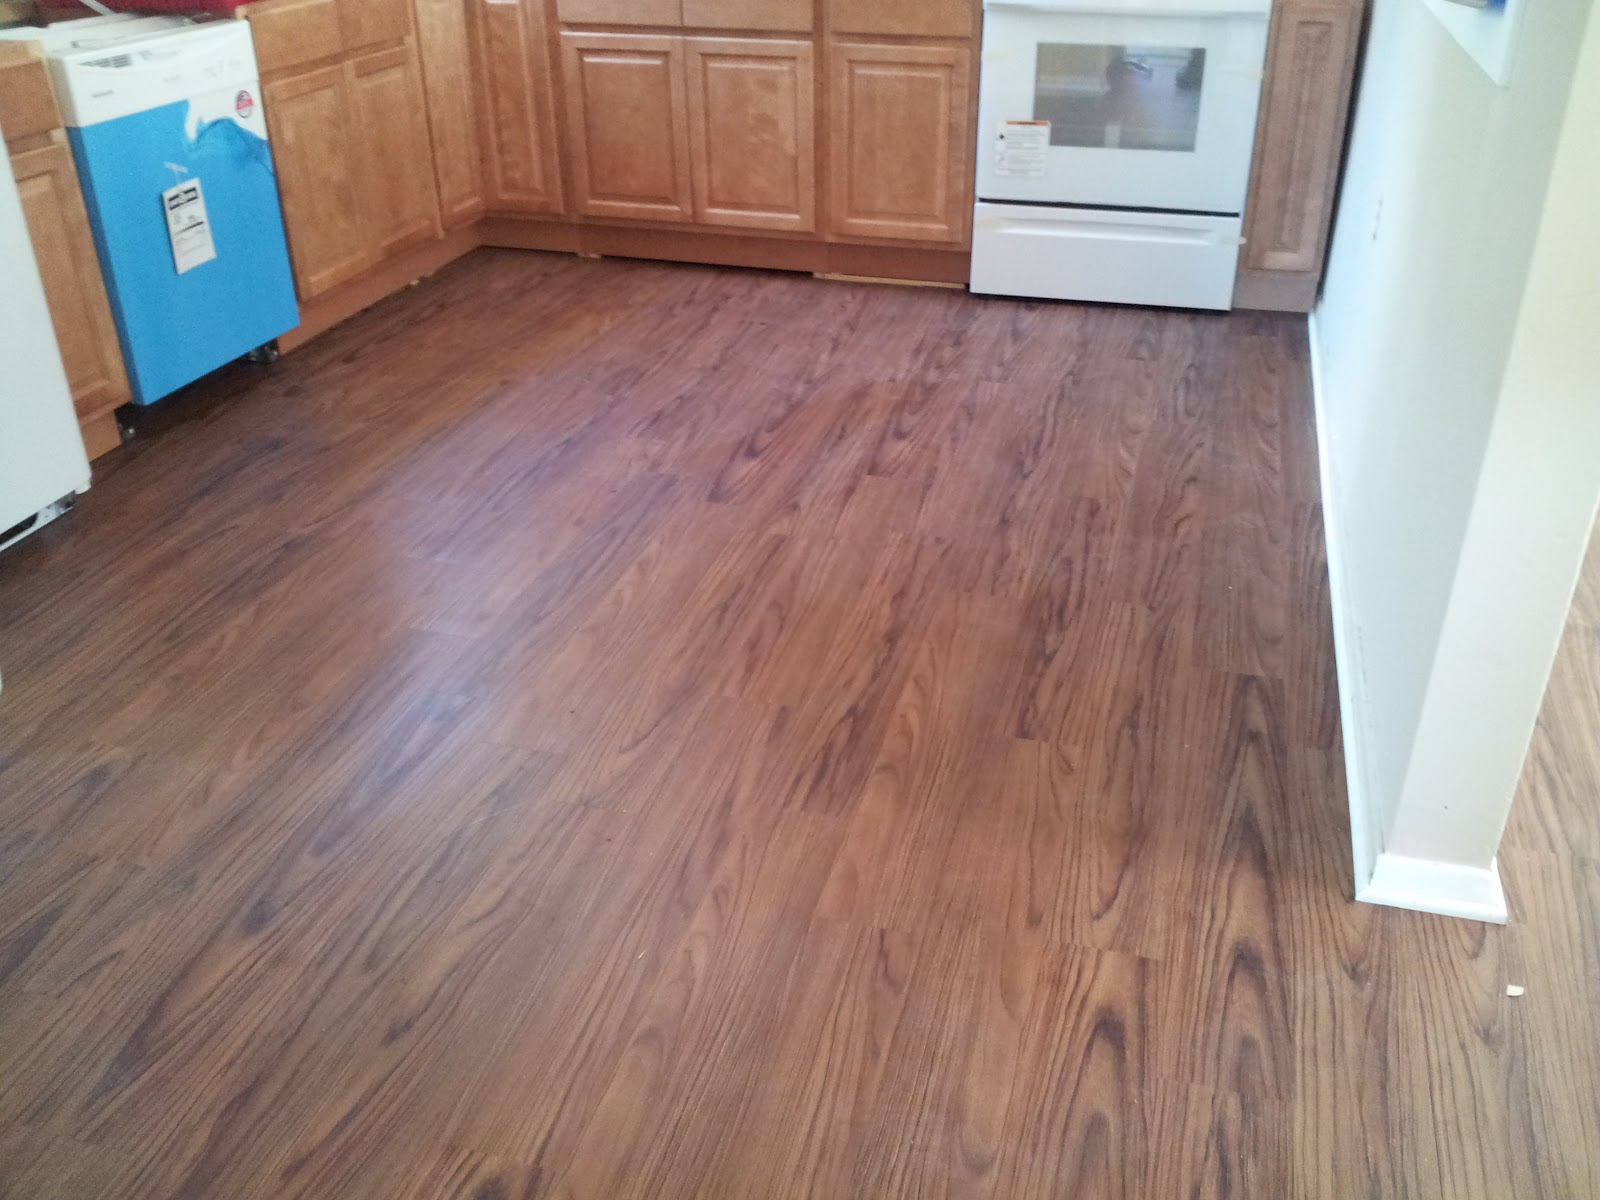 Vinyl flooring that looks like wood ask home design - Vinyl deck tiles ...